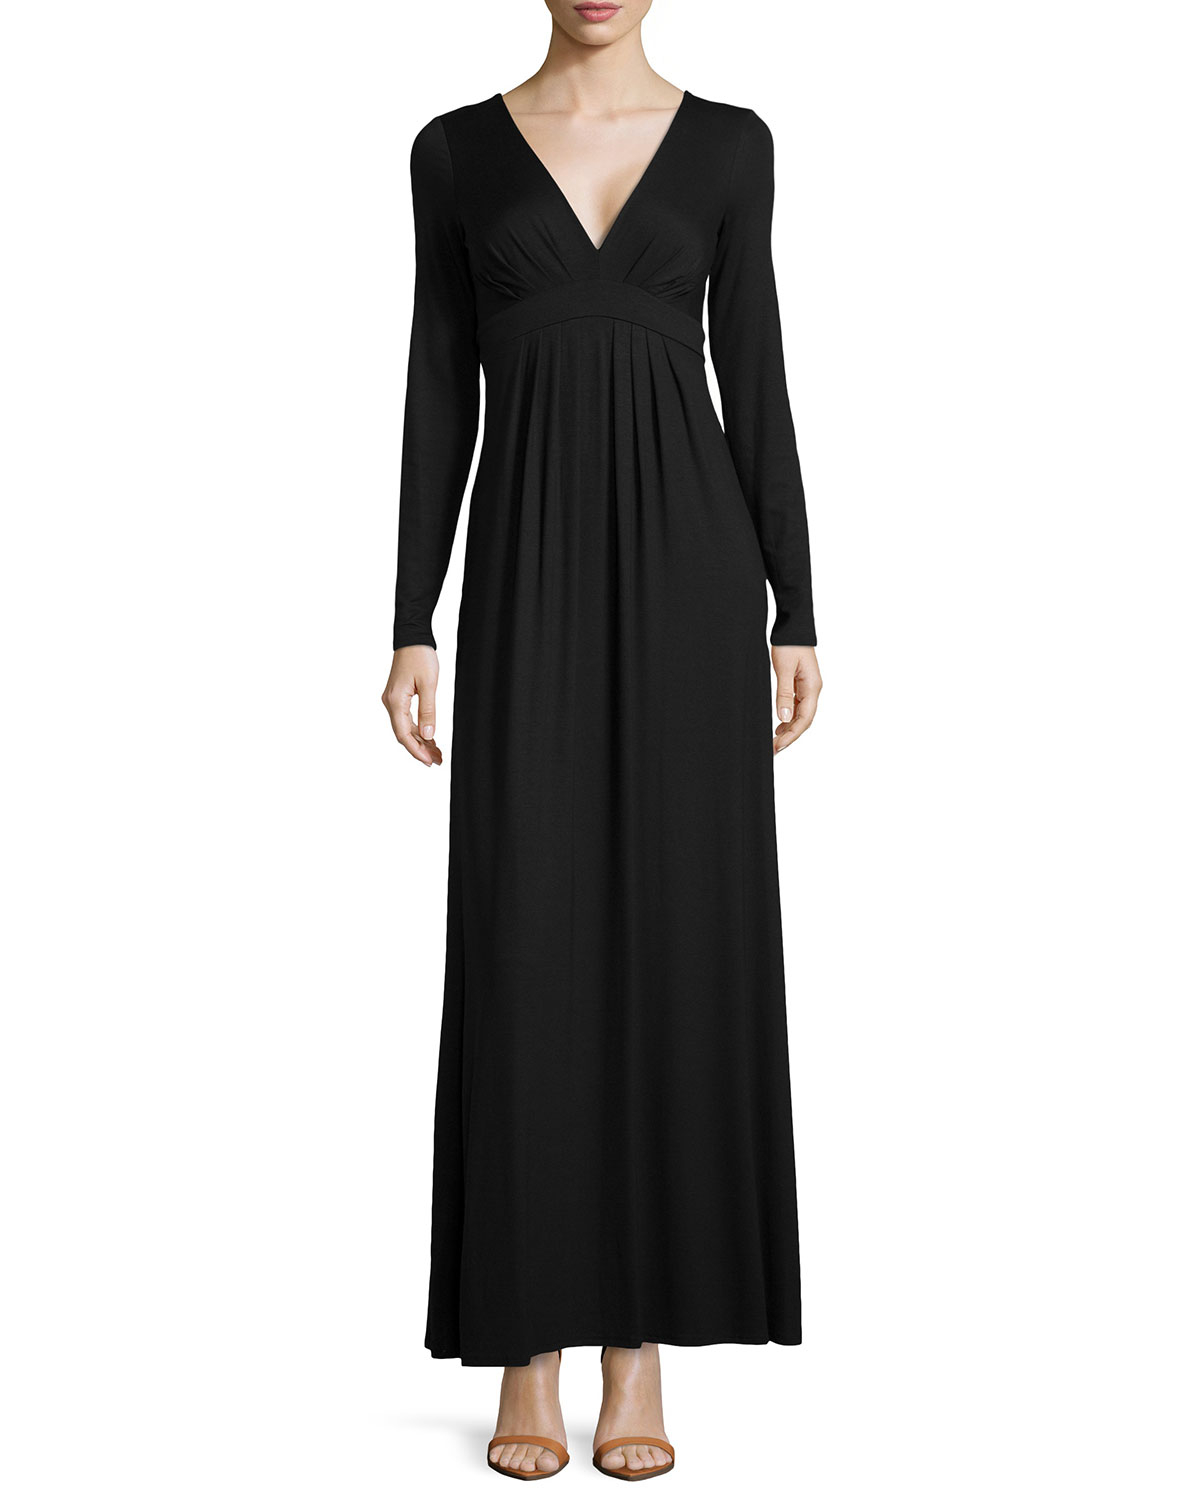 d15991521445 Black Jersey Maxi Dress Long Sleeve